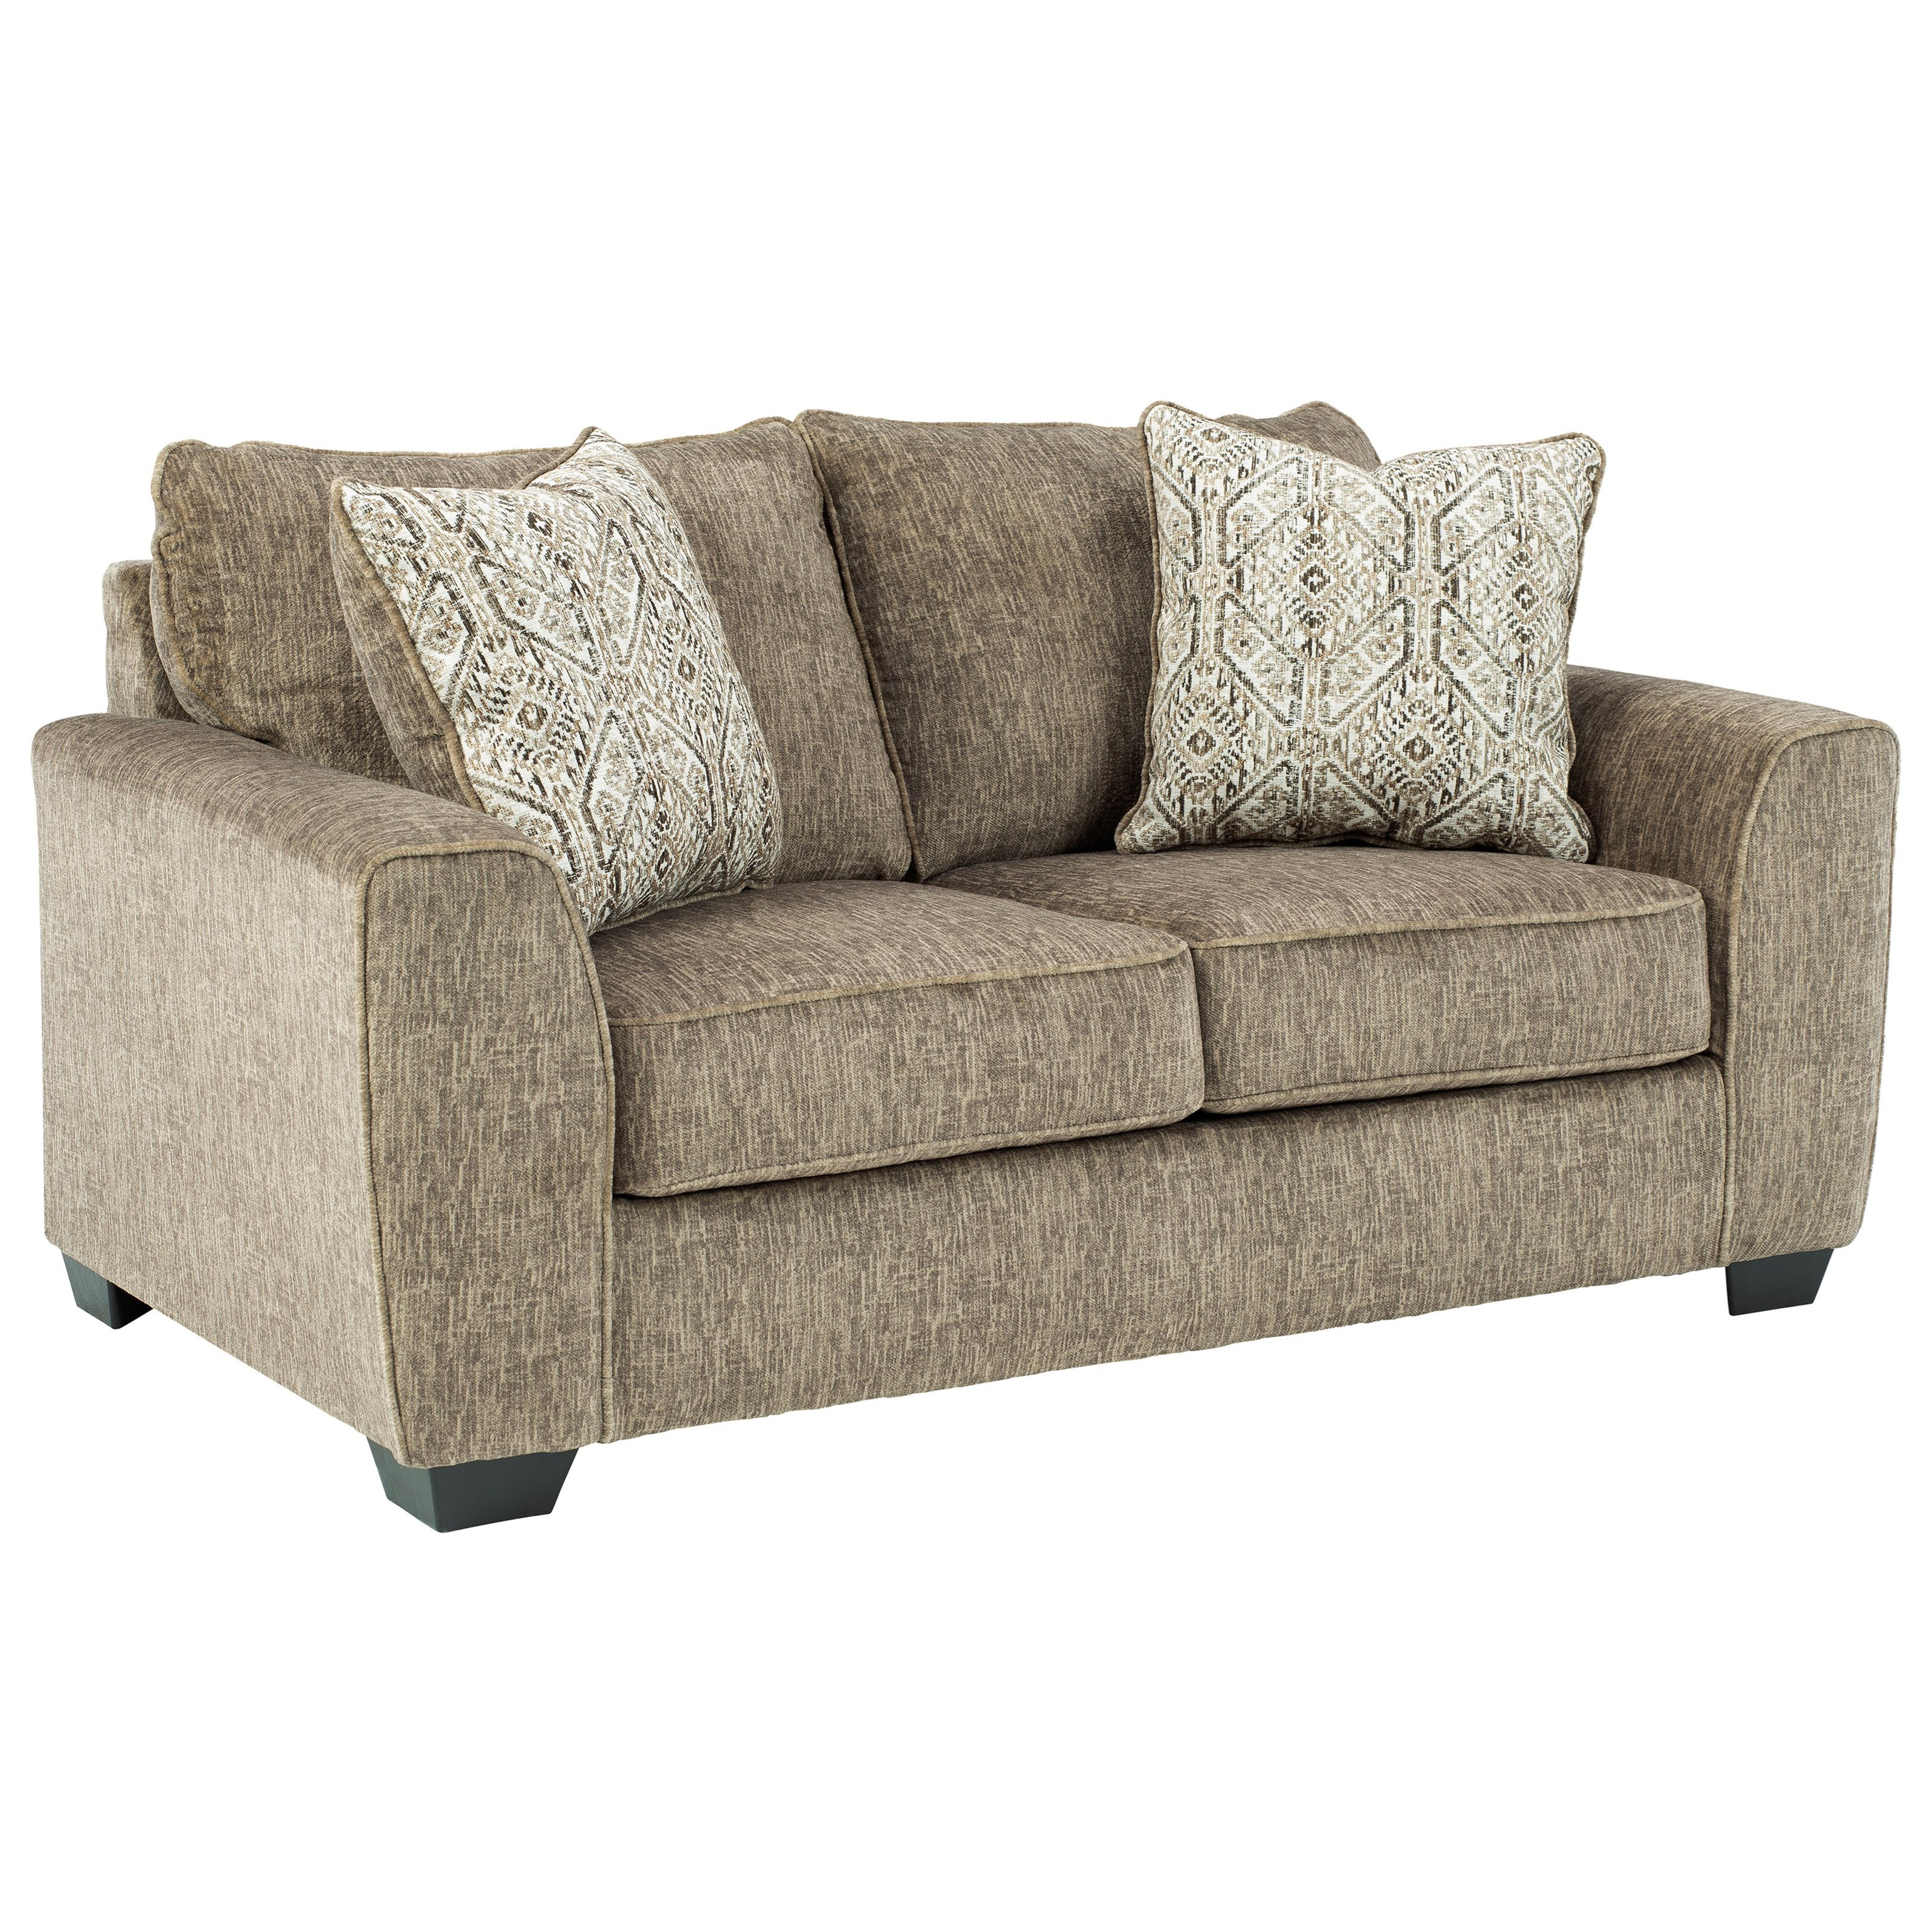 Olin Loveseat by Benchcraft at Beck's Furniture